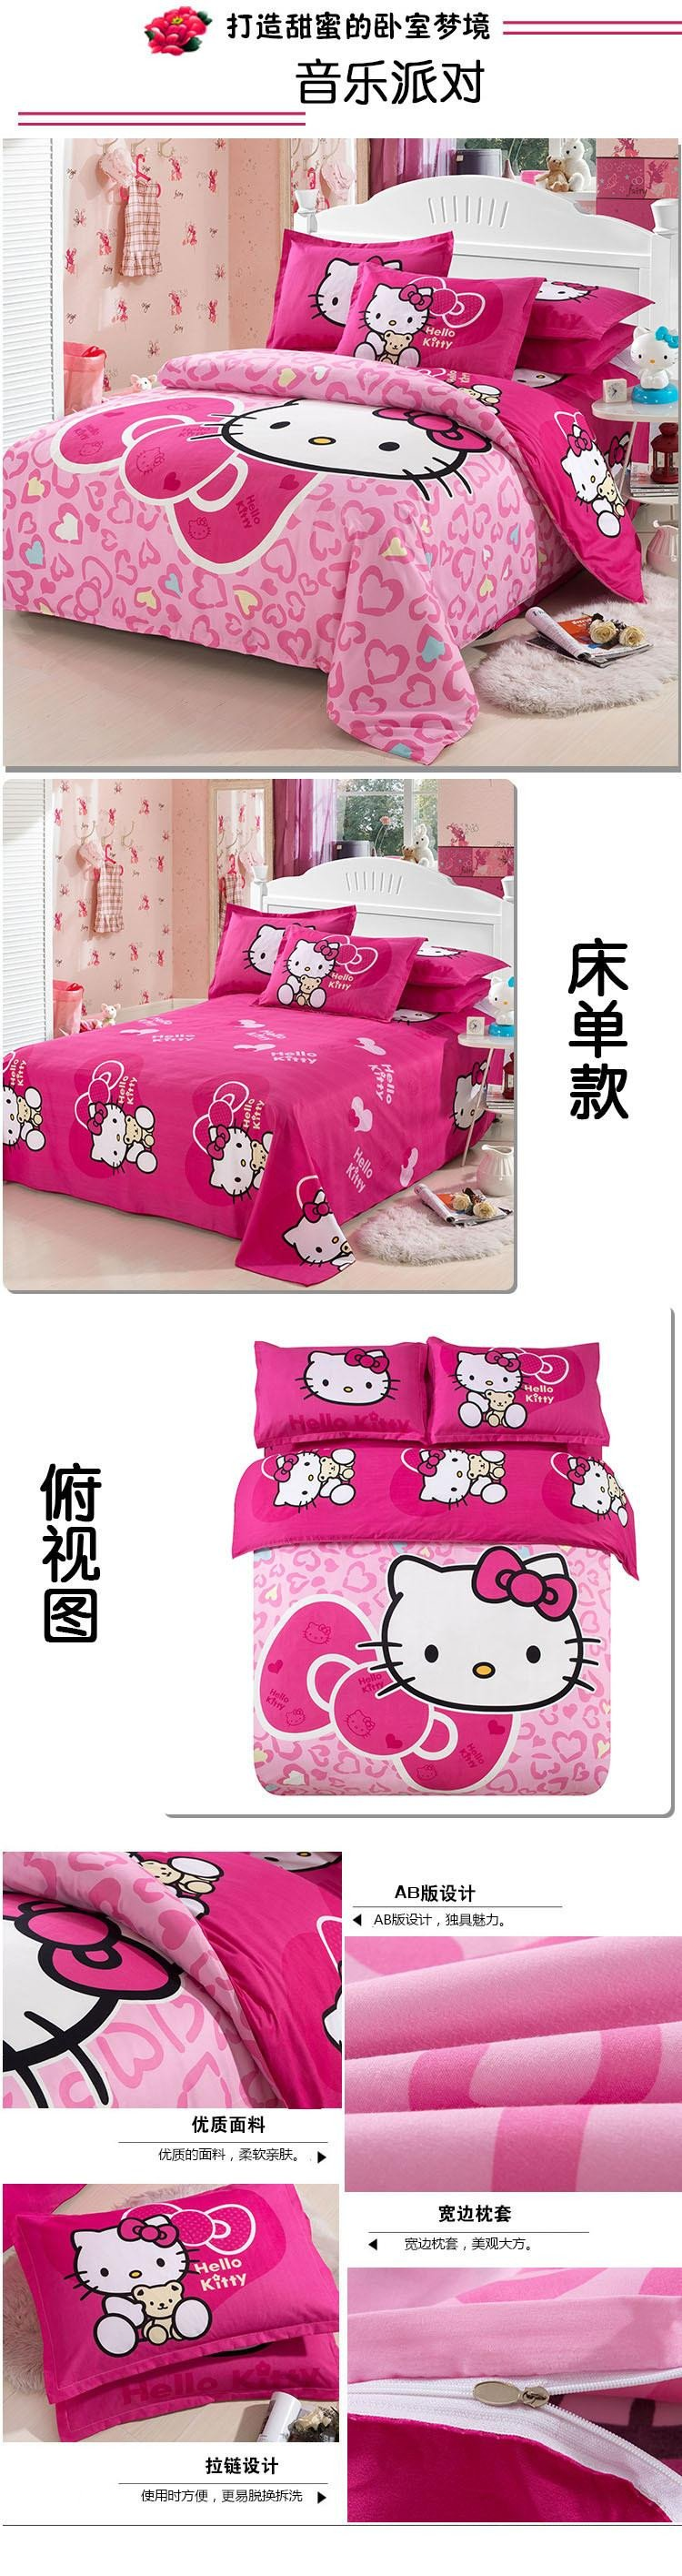 Hello Kitty Bedroom Set Beautiful Cotton Hello Kitty Home Textile Reactive Print Bedding Sets Cartoon Bed Sheet Duvet Cover Set Bedding Set Pink Duvet forters and Bedding From